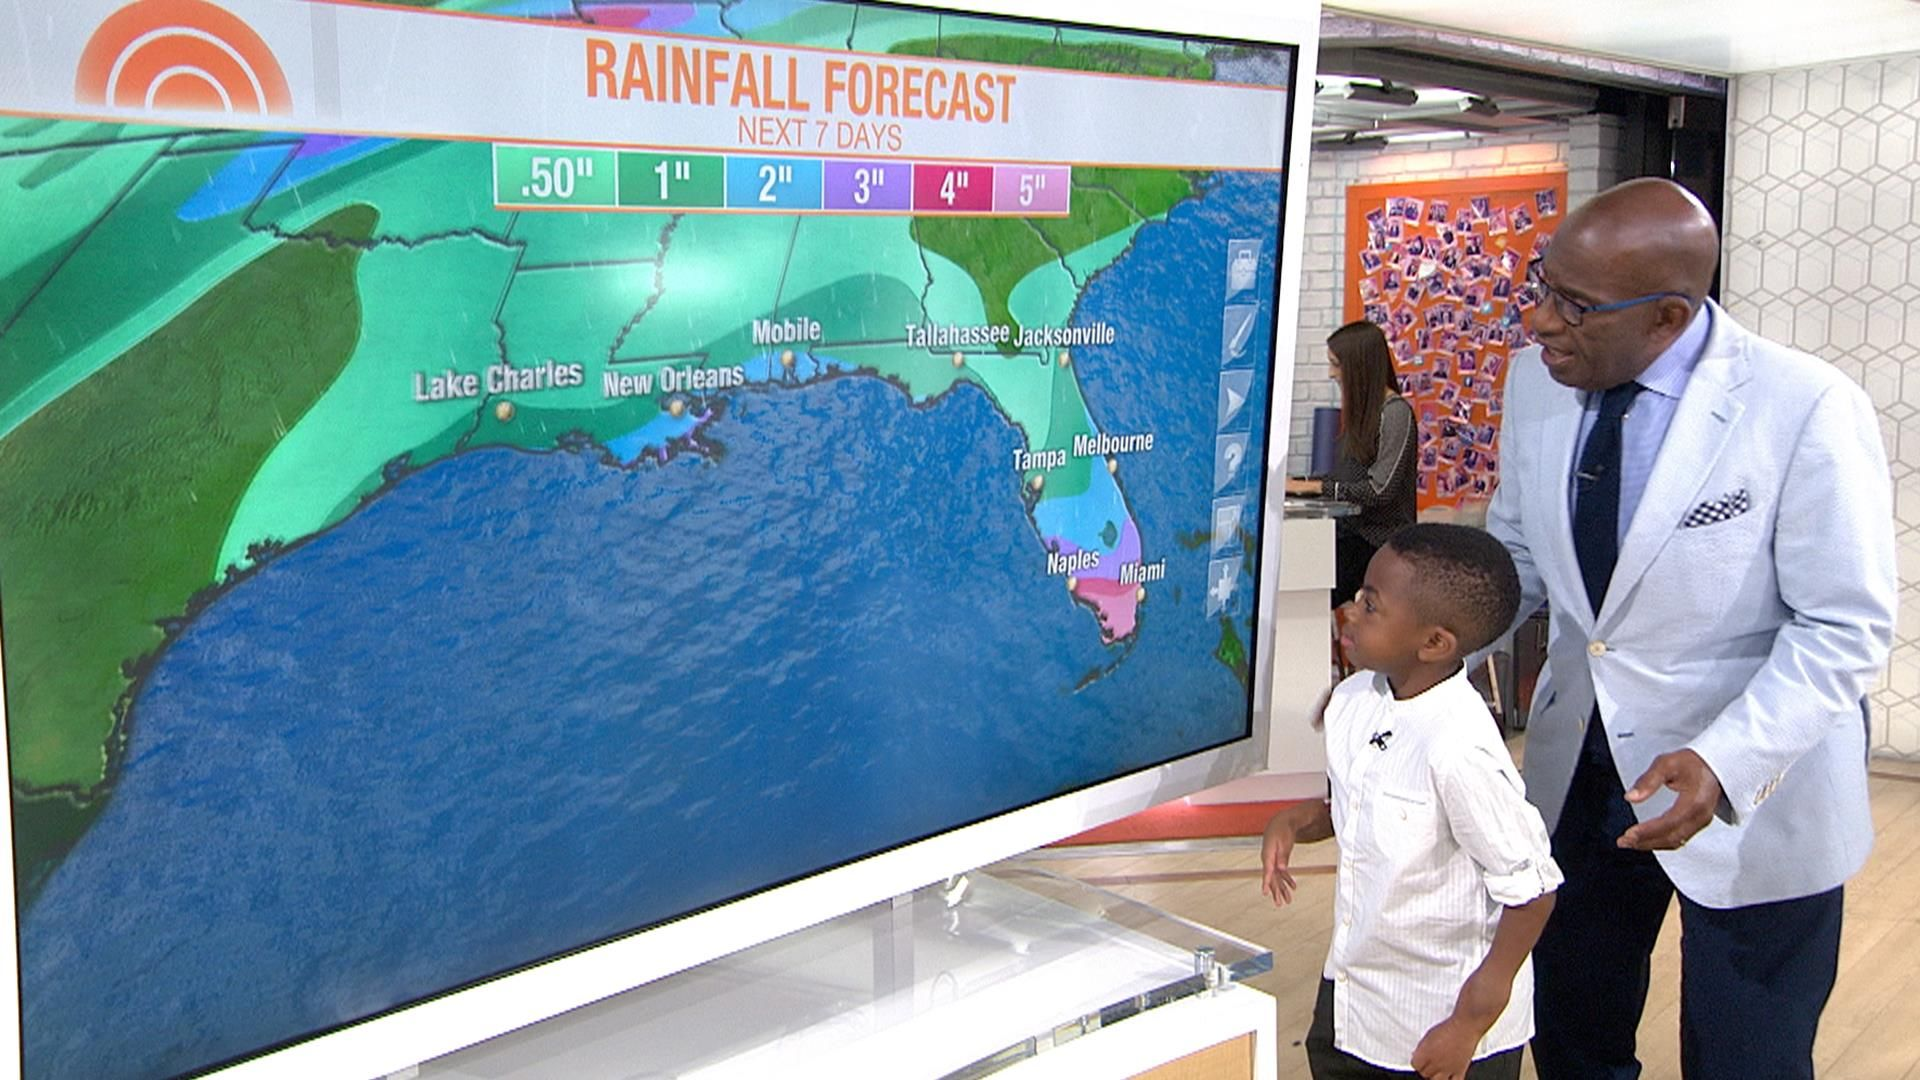 Watch Zion Harvey use his new hands to help Al Roker with